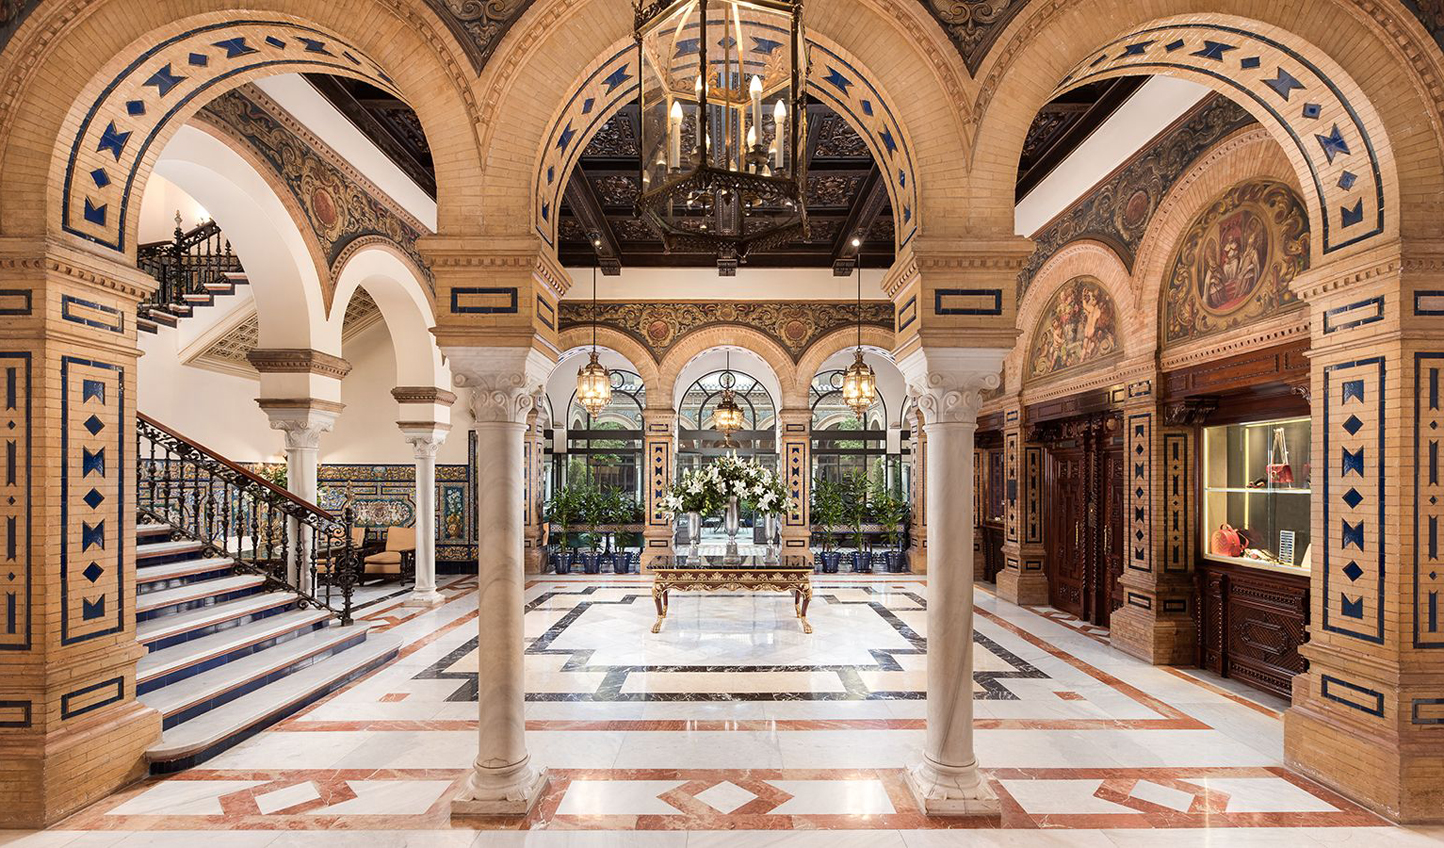 Hotel Alfonso Xiii Seville Luxury Holidays In Spain